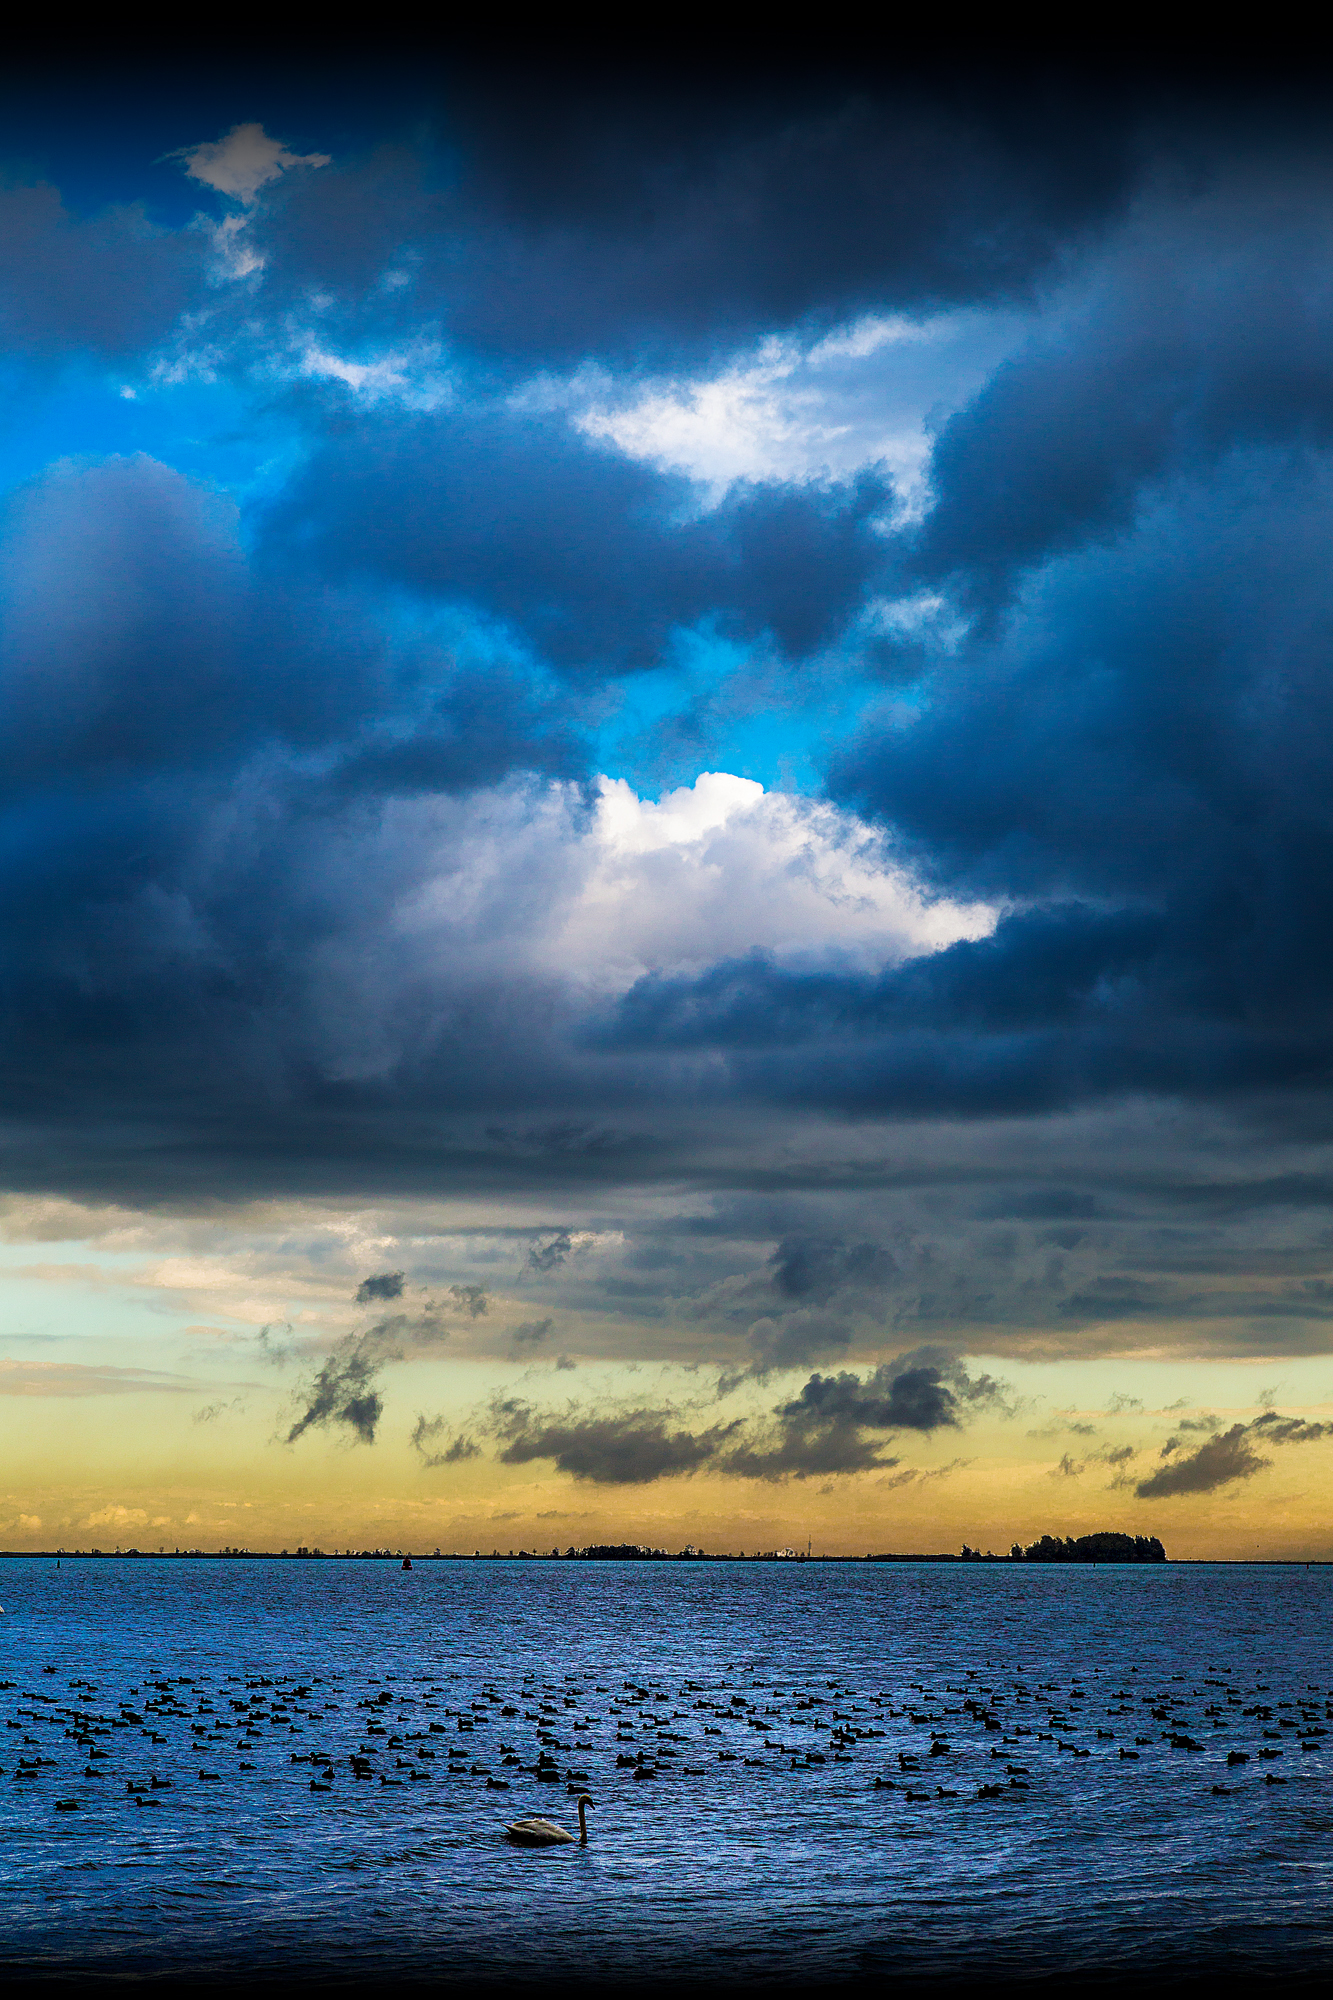 The Stormy Skies Over Marken